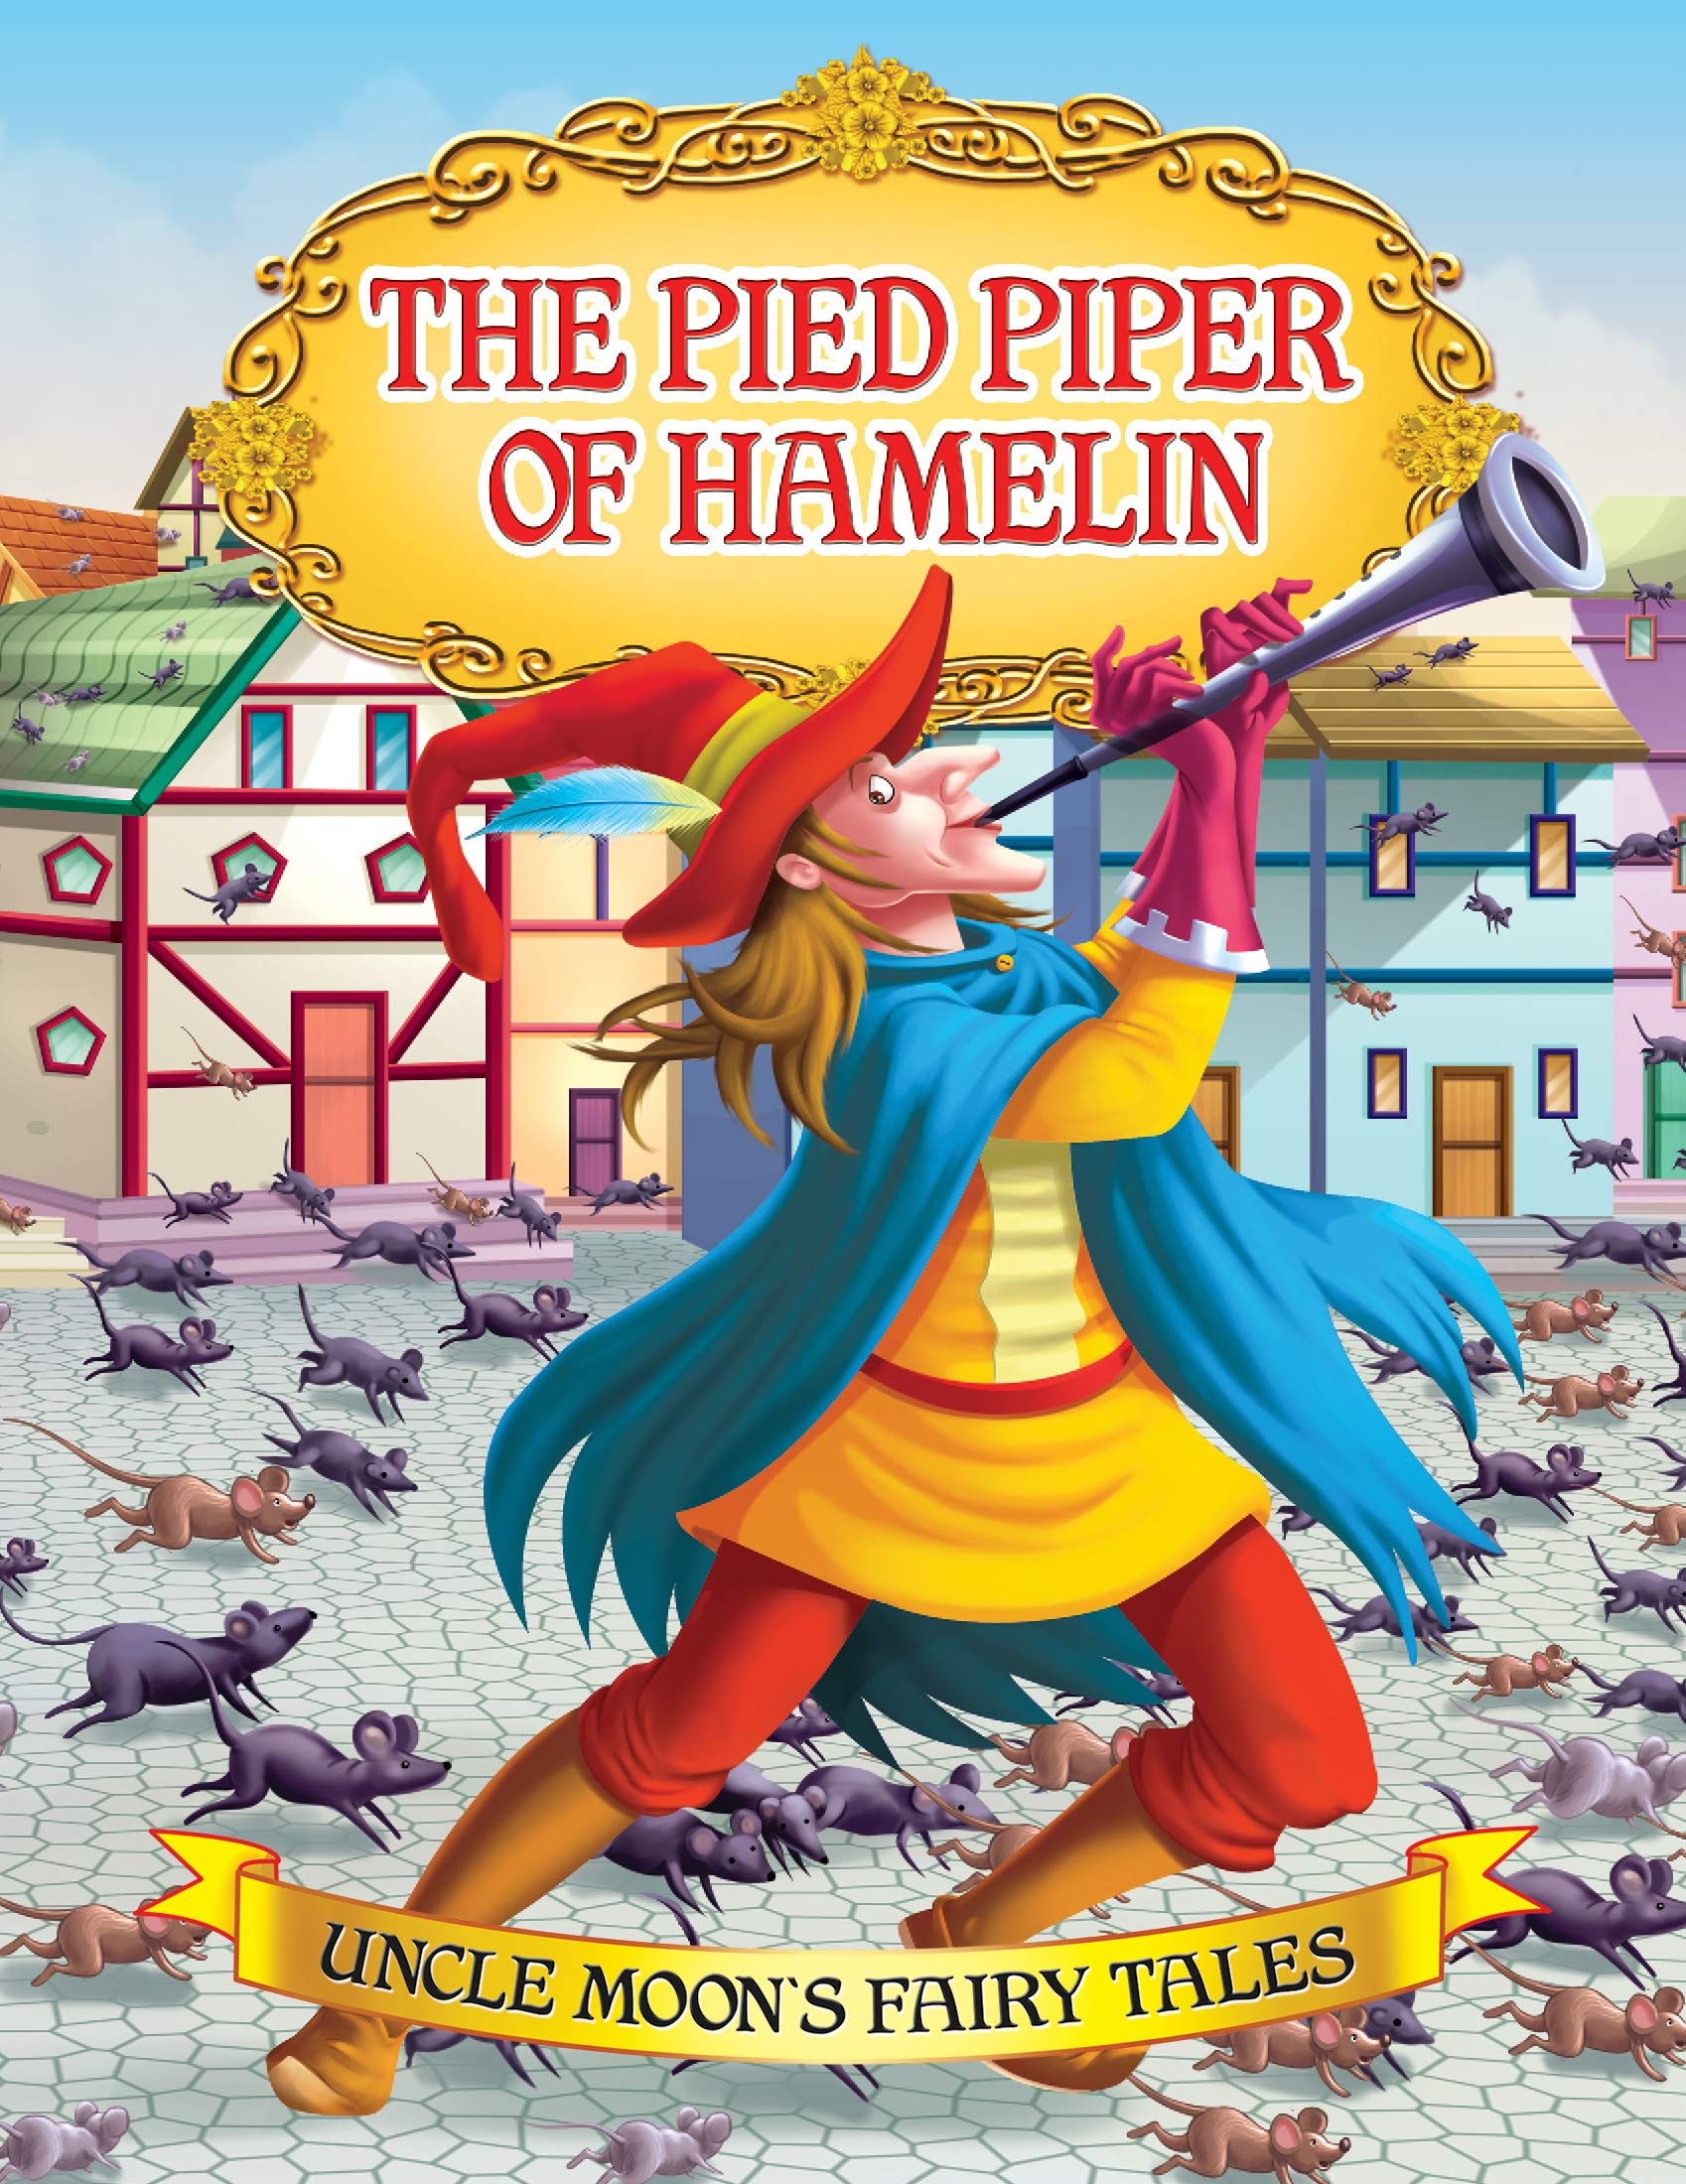 (Uncle Moon's Fairy Tales) The Pied Piper of Hamelin